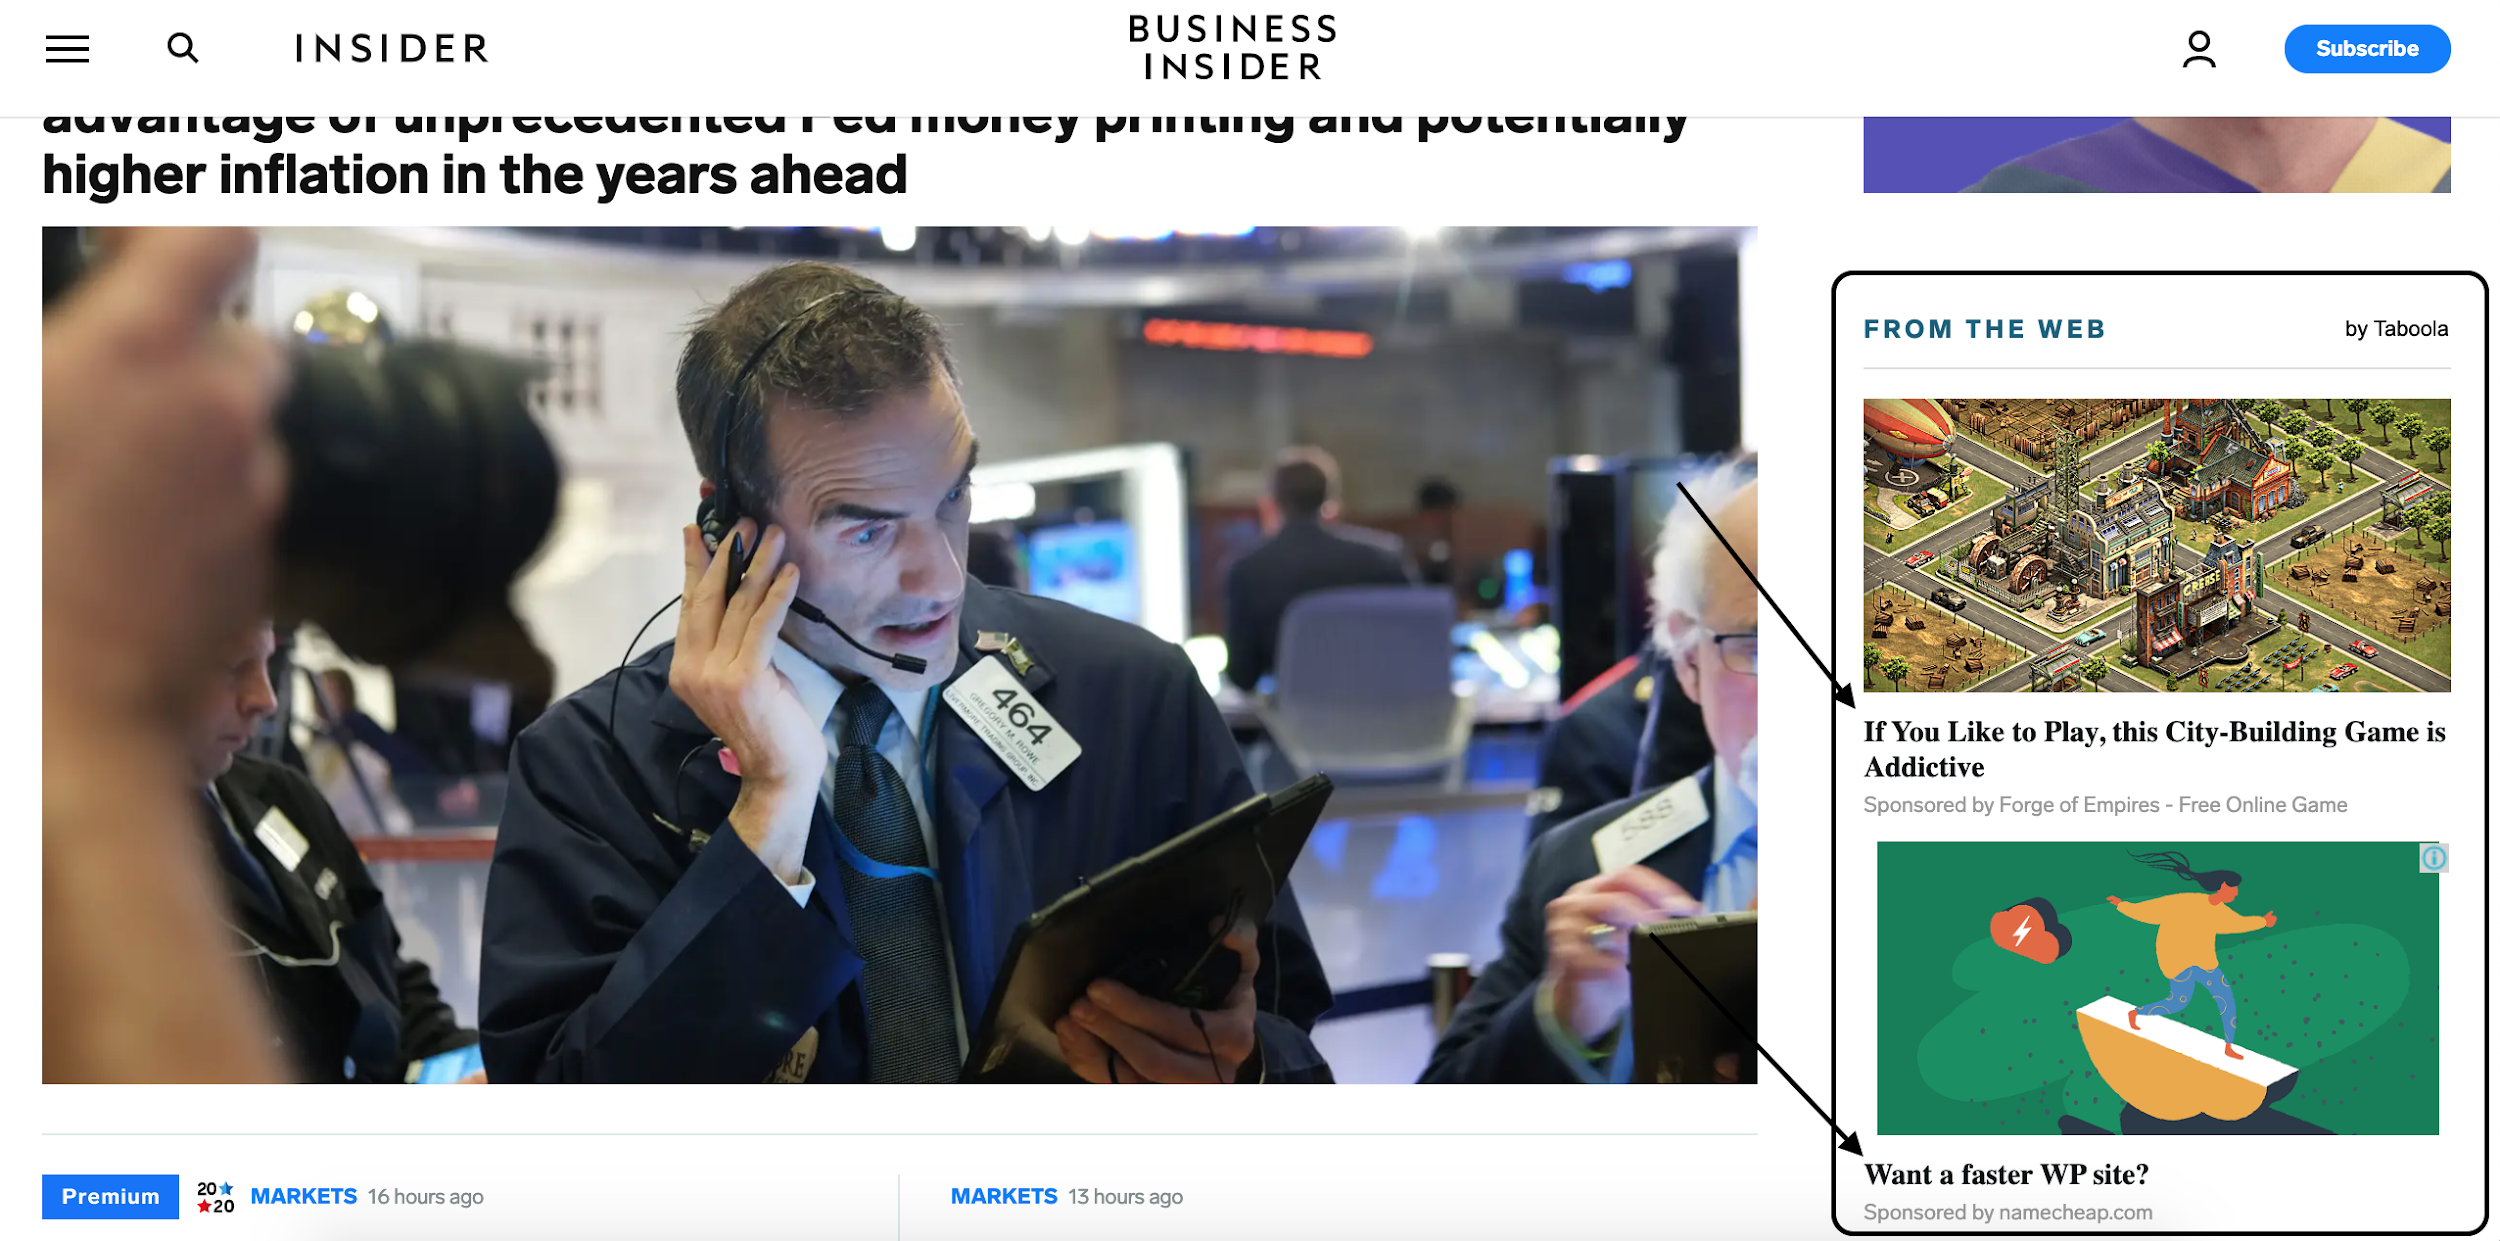 example of native ads on business insider